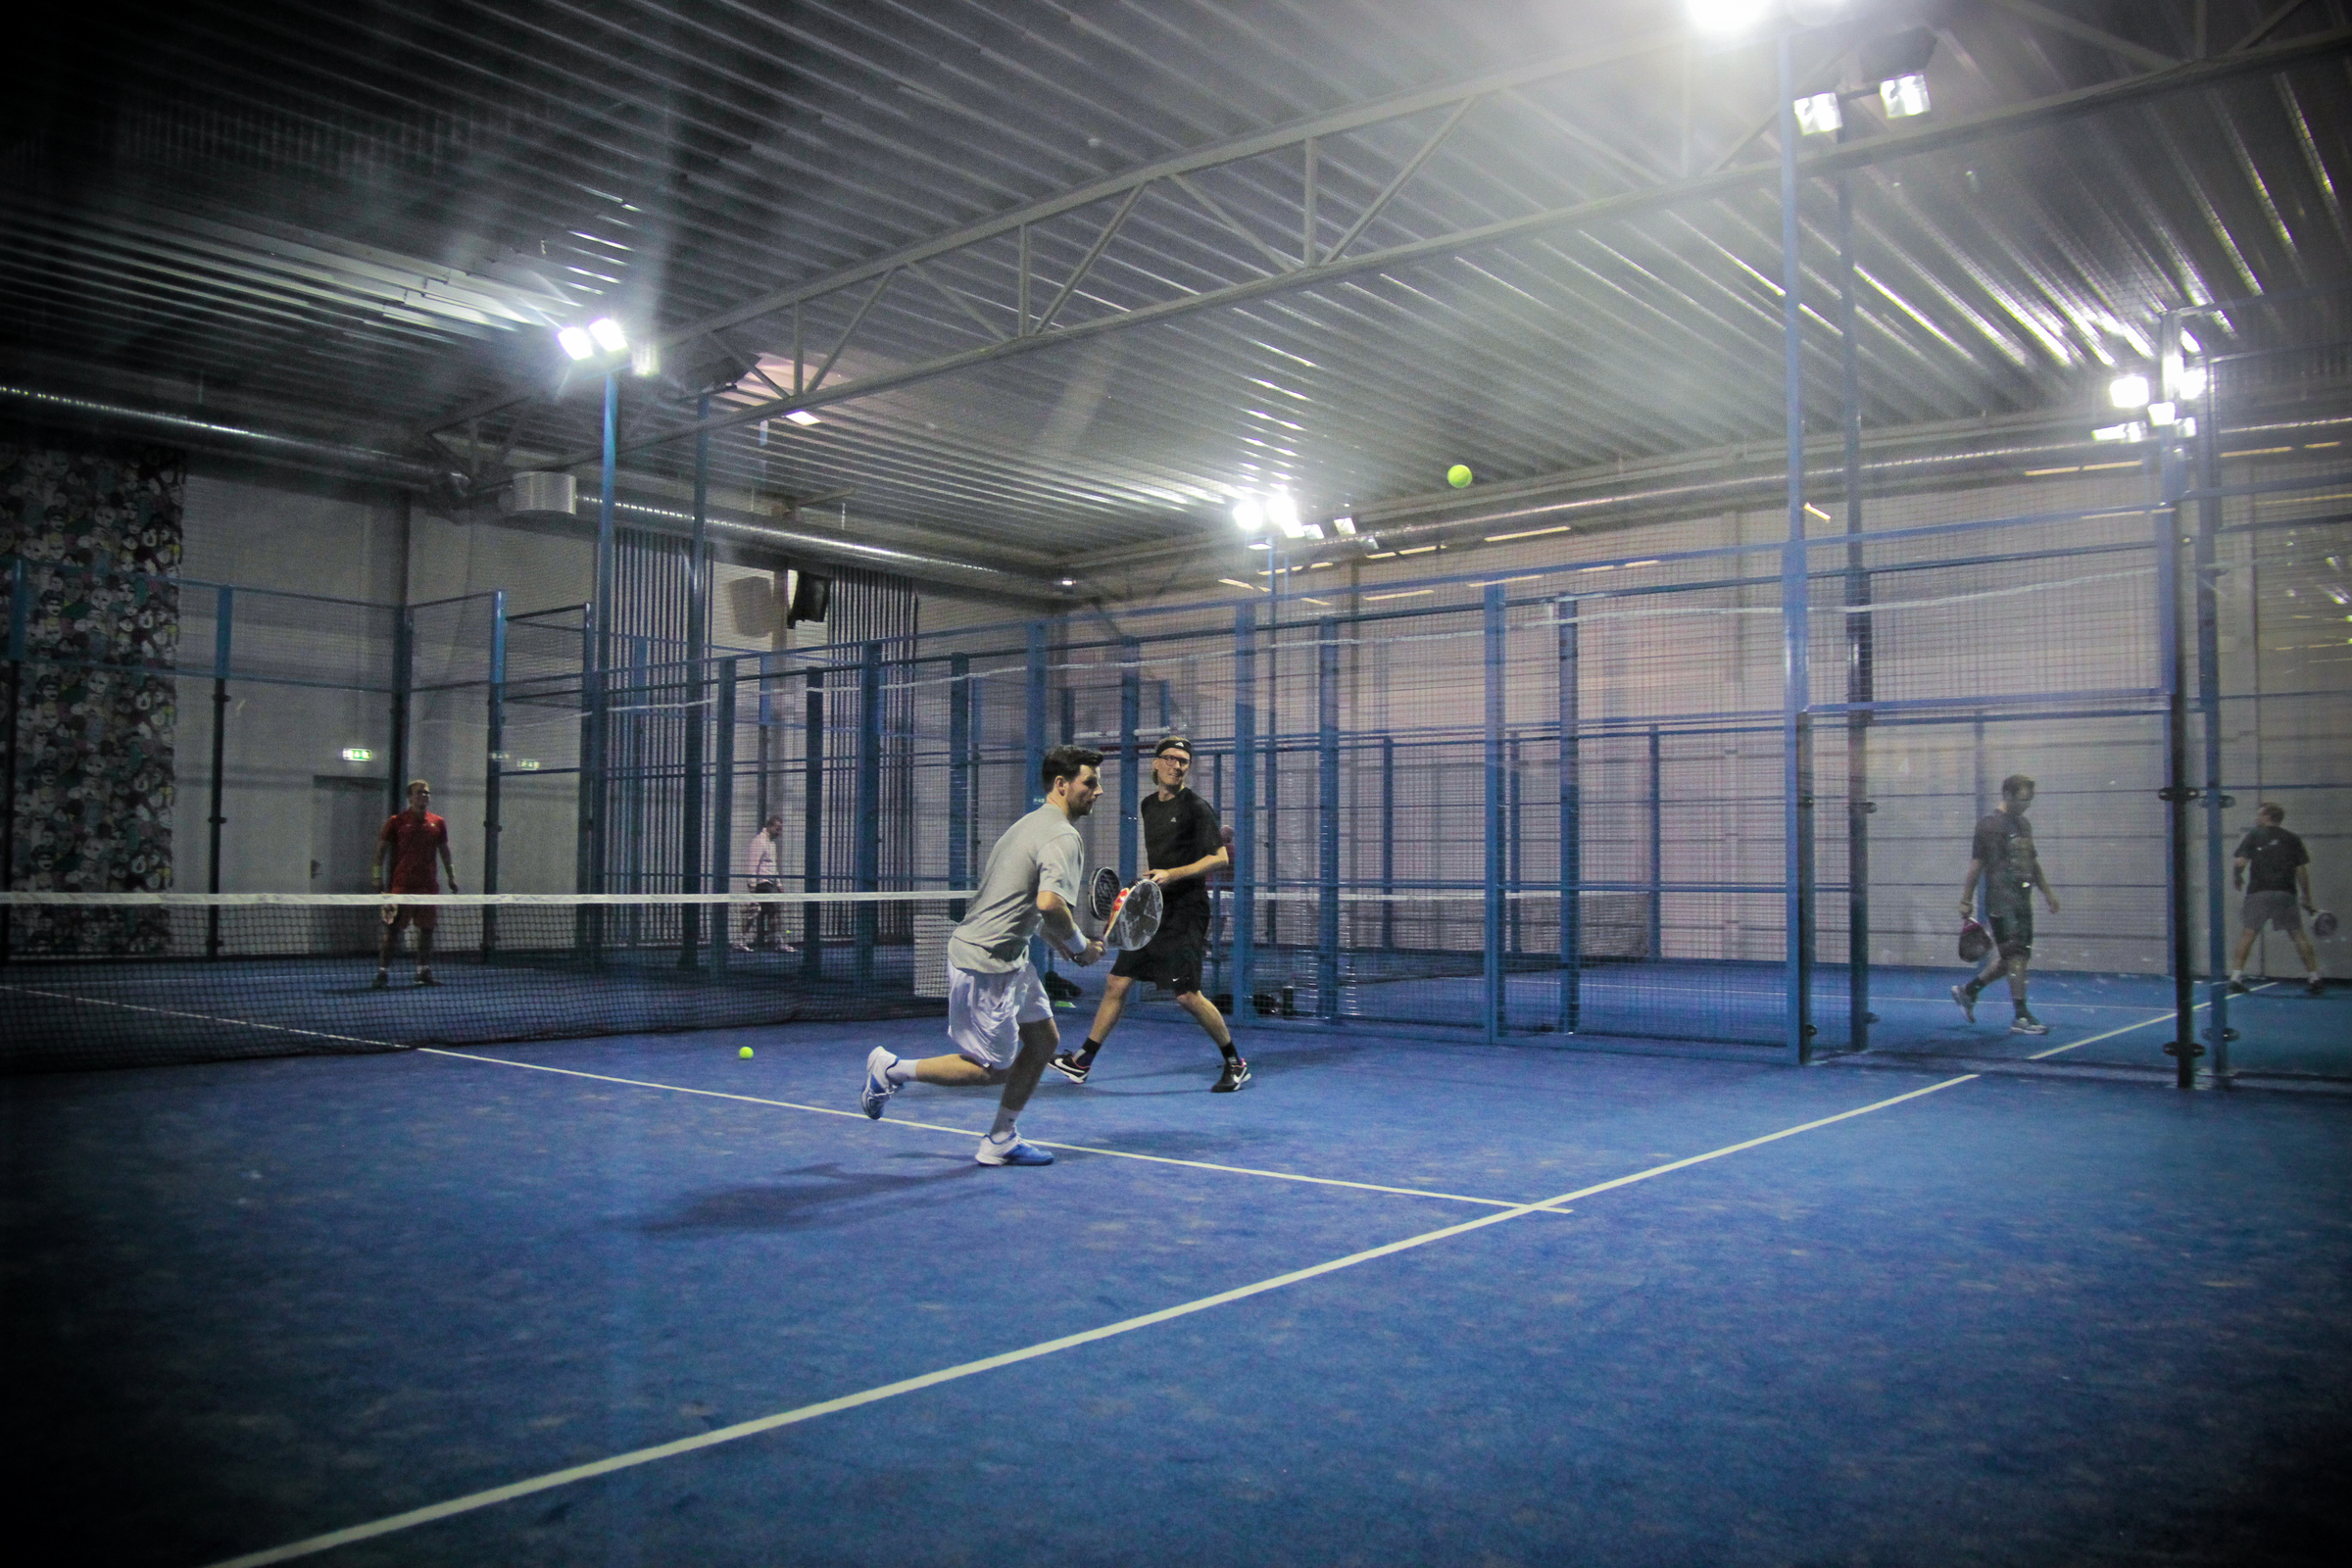 Pistas de pádel en Suecia / Padel courts in Sweden (Foto/Photo: http://www.hd.se/)